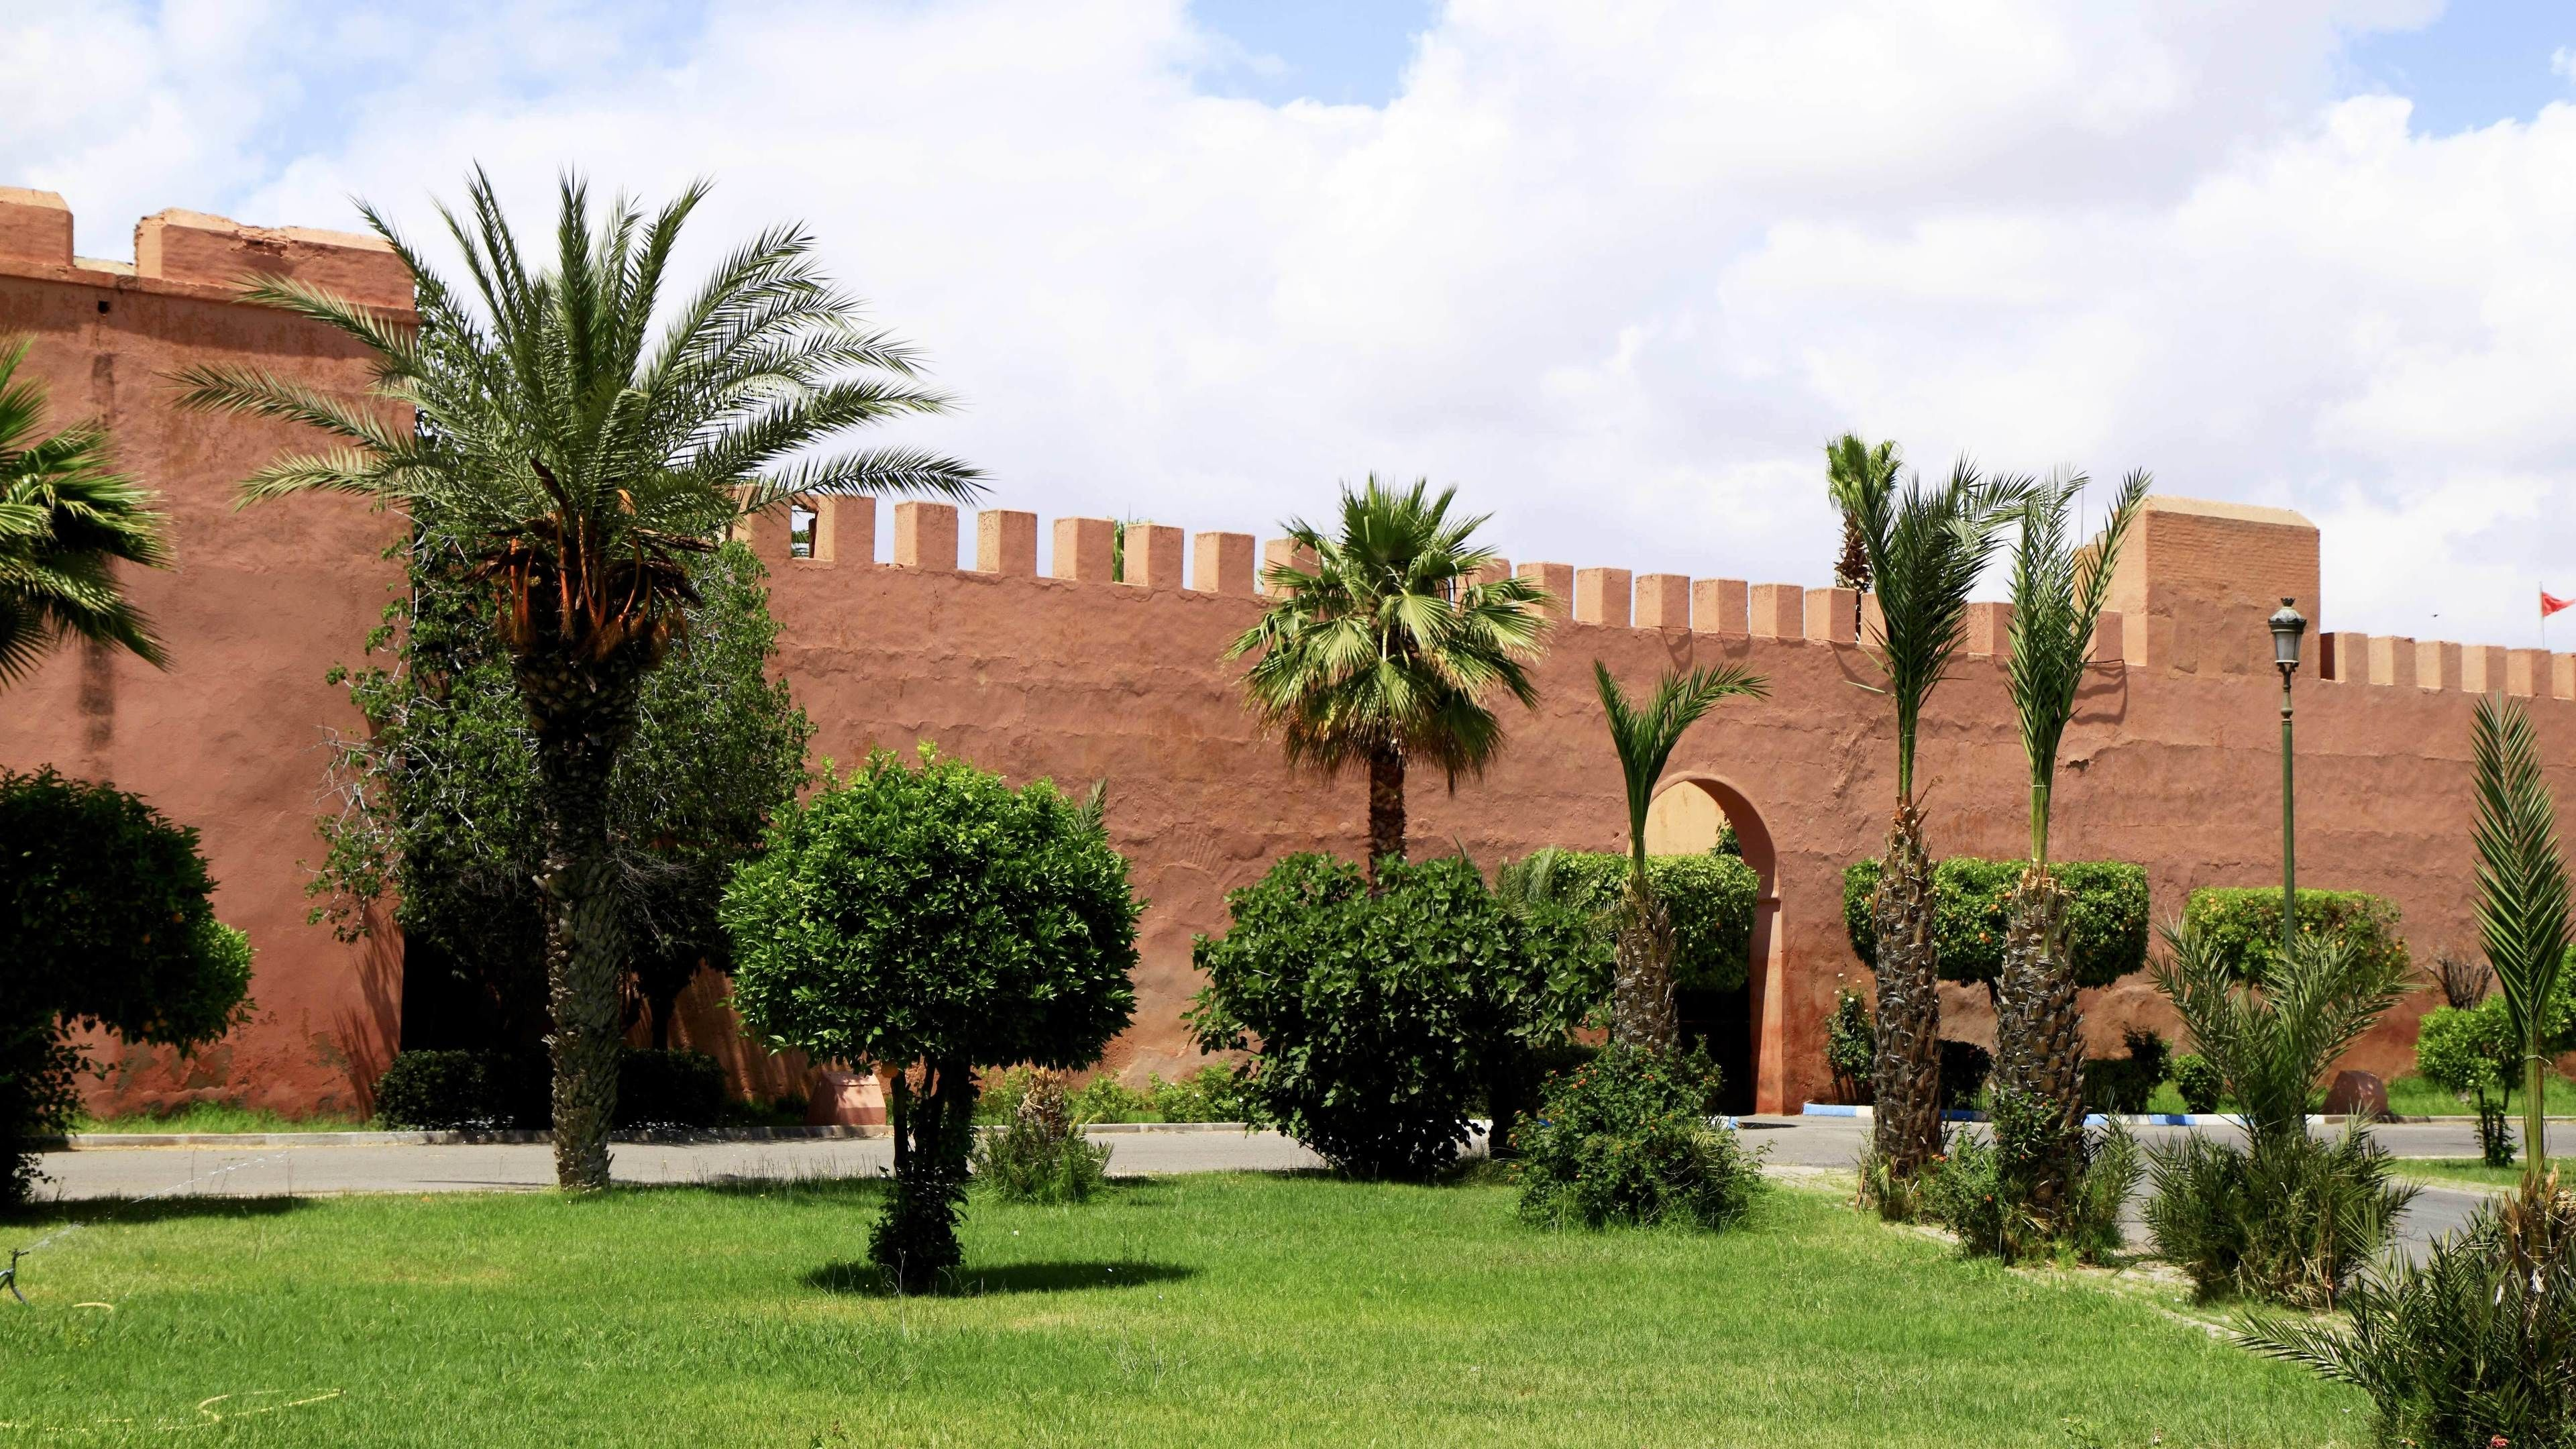 Day view of the city of Marrakech